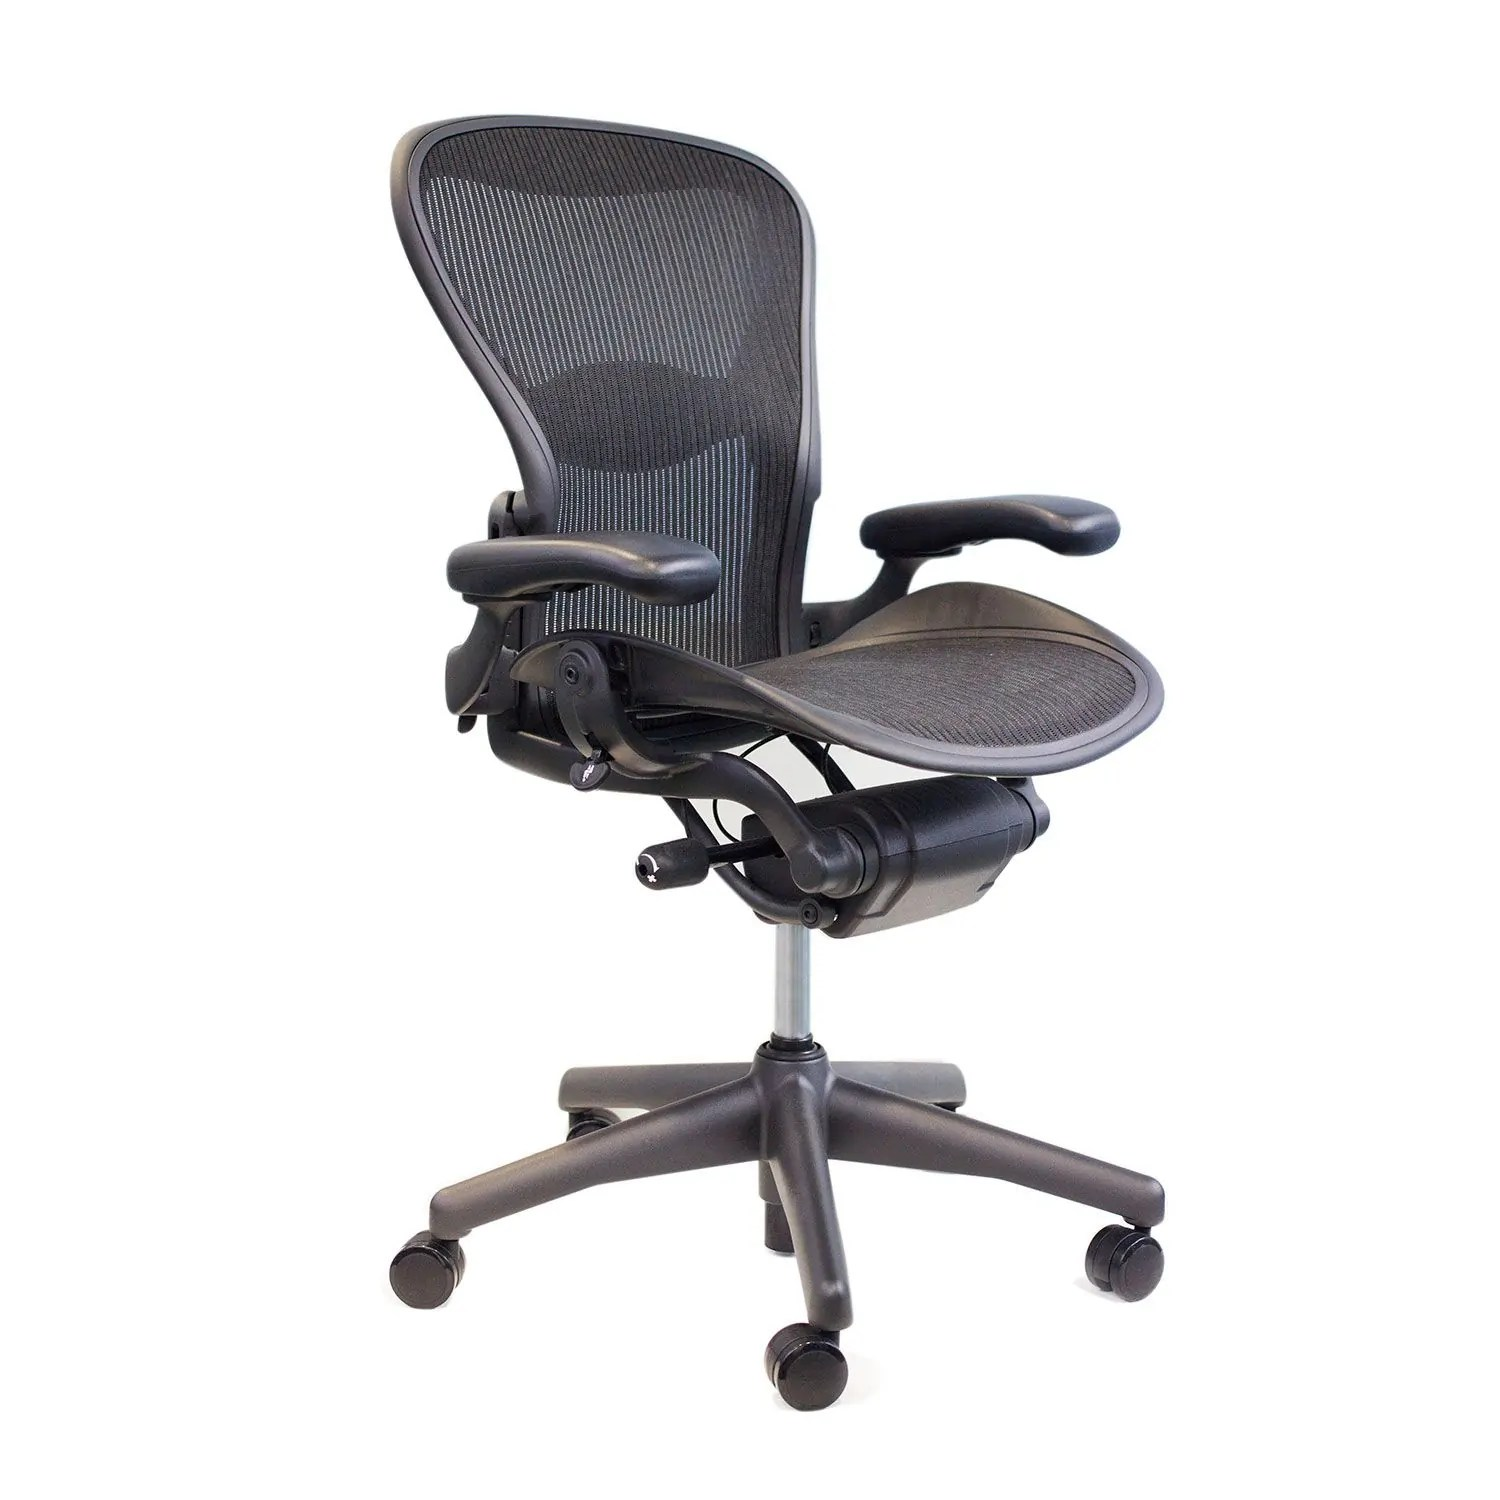 aeron chair sale democratic national committee herman miller b000hv6nvc 499 00 buyvia